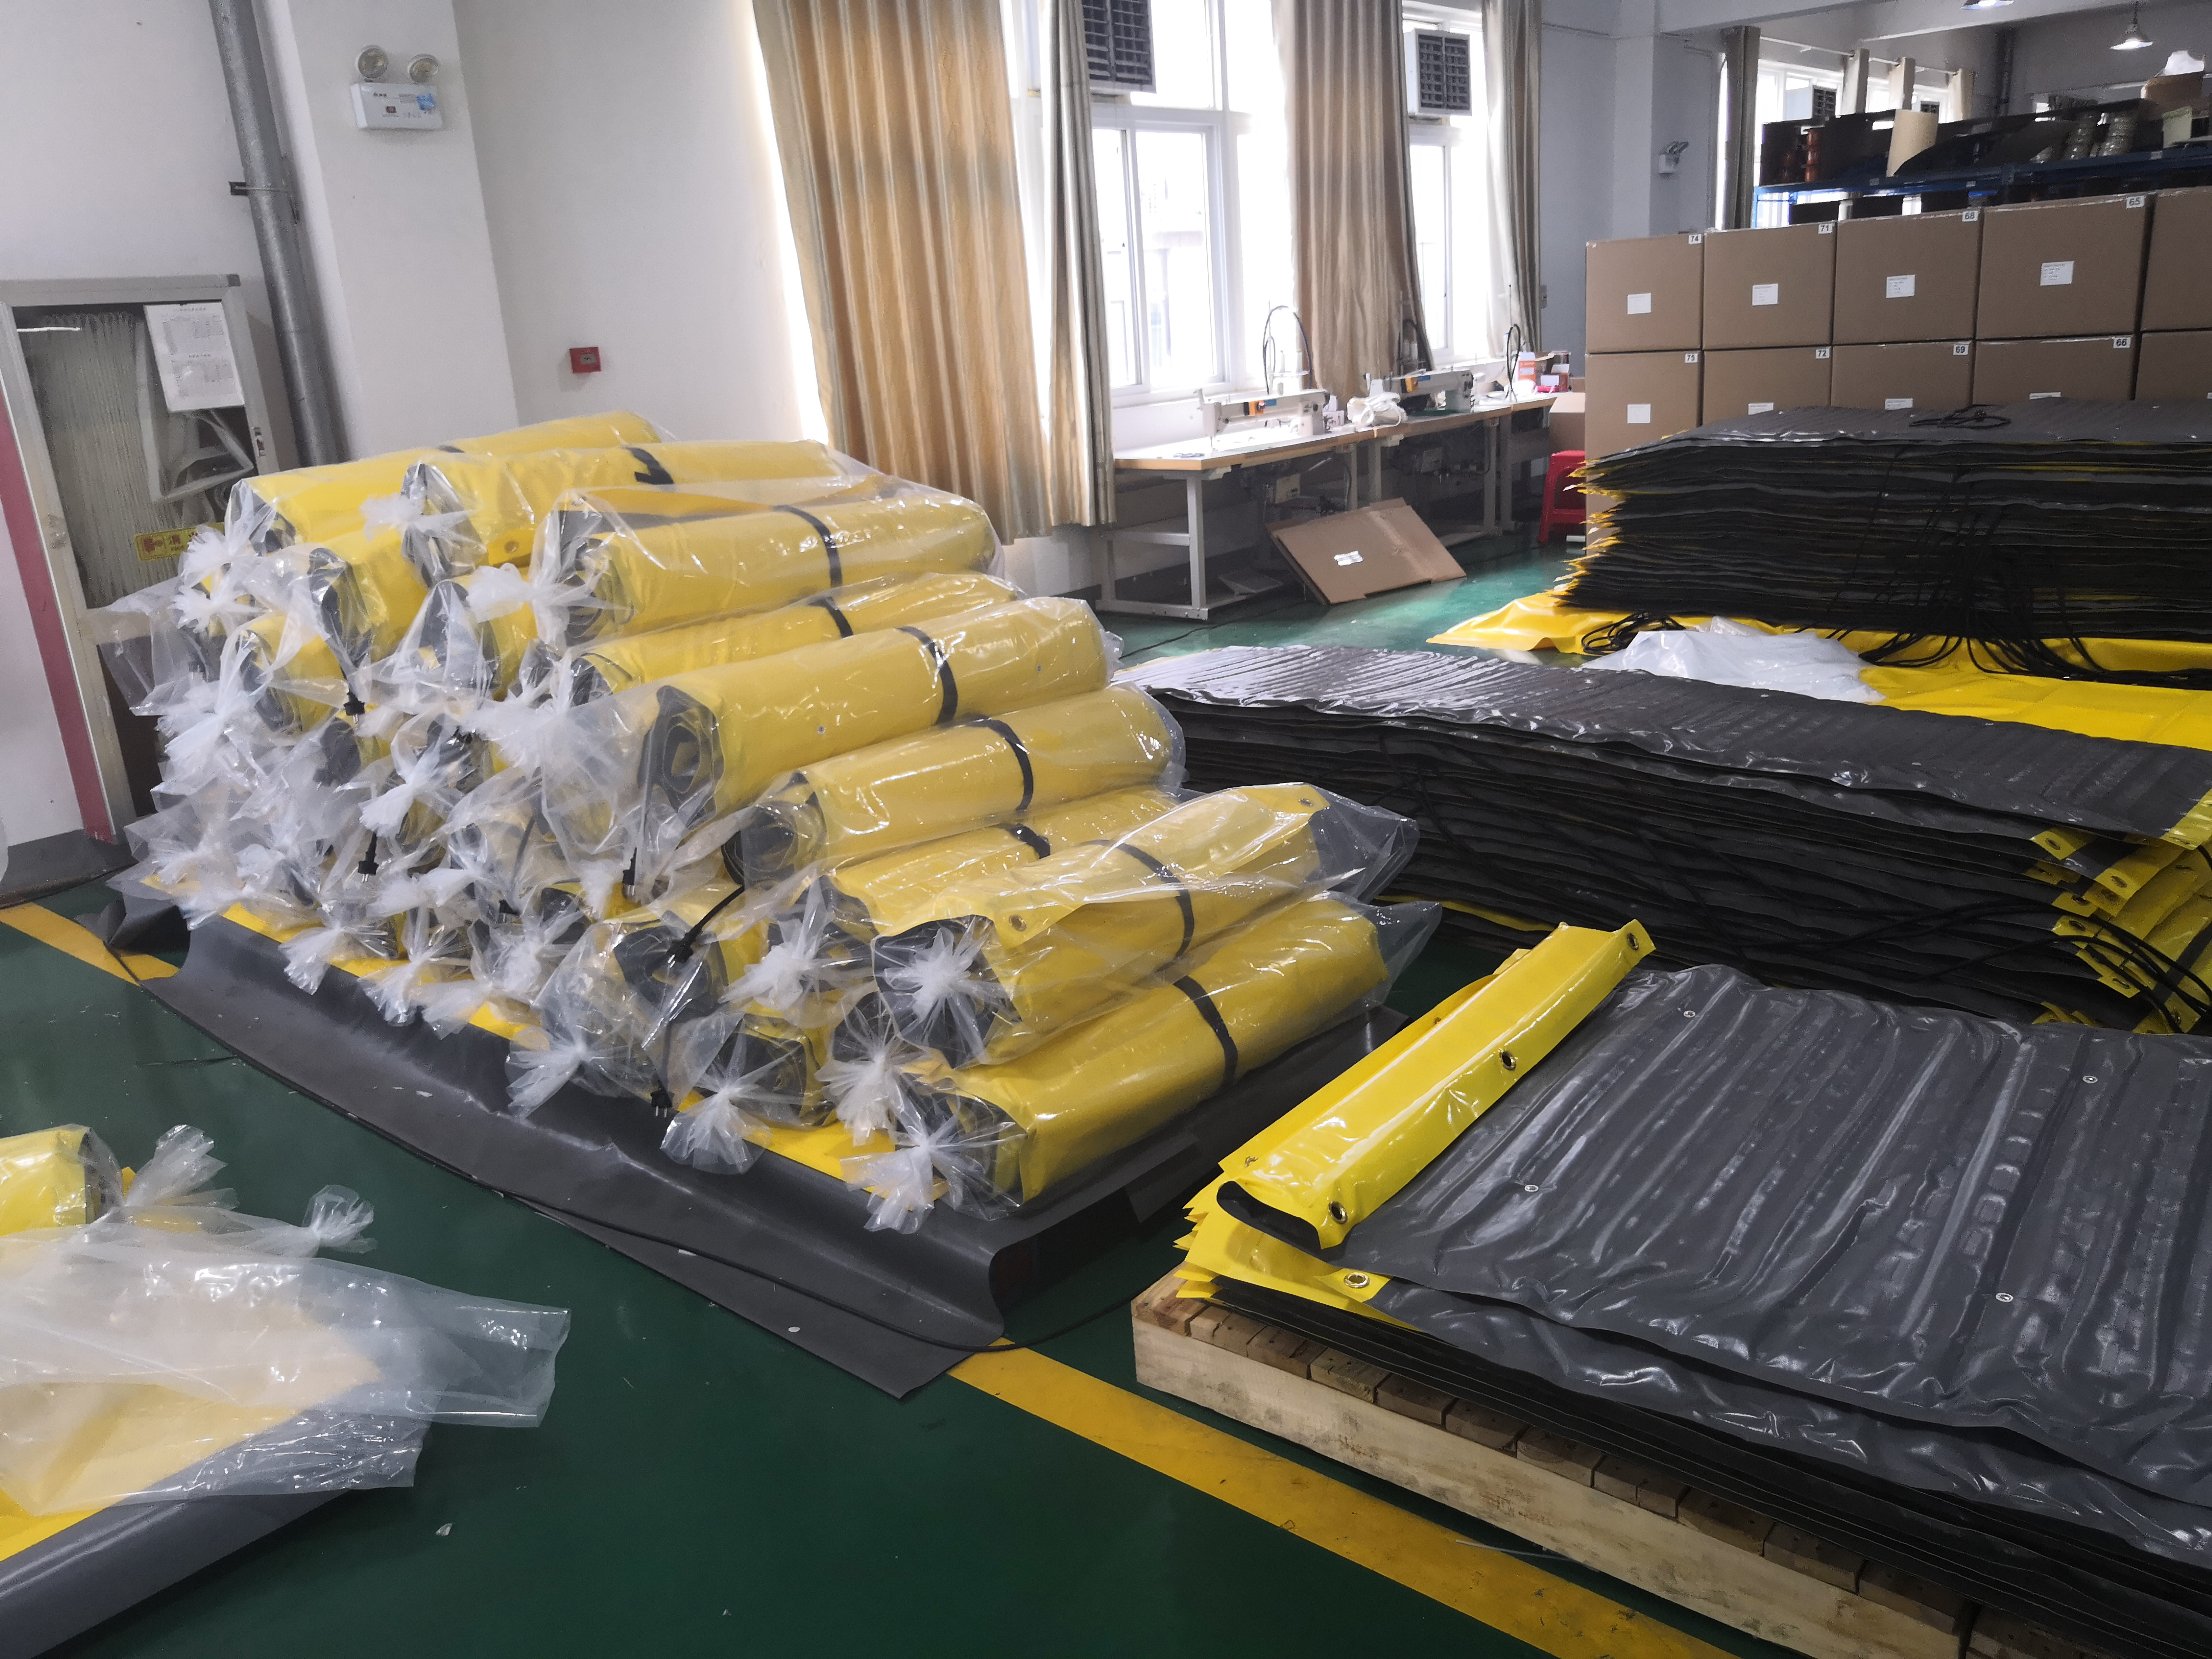 deicing snow melting mat outdoor using snow thawing of floor/sand/water pipes/sewage pipes antifreezing